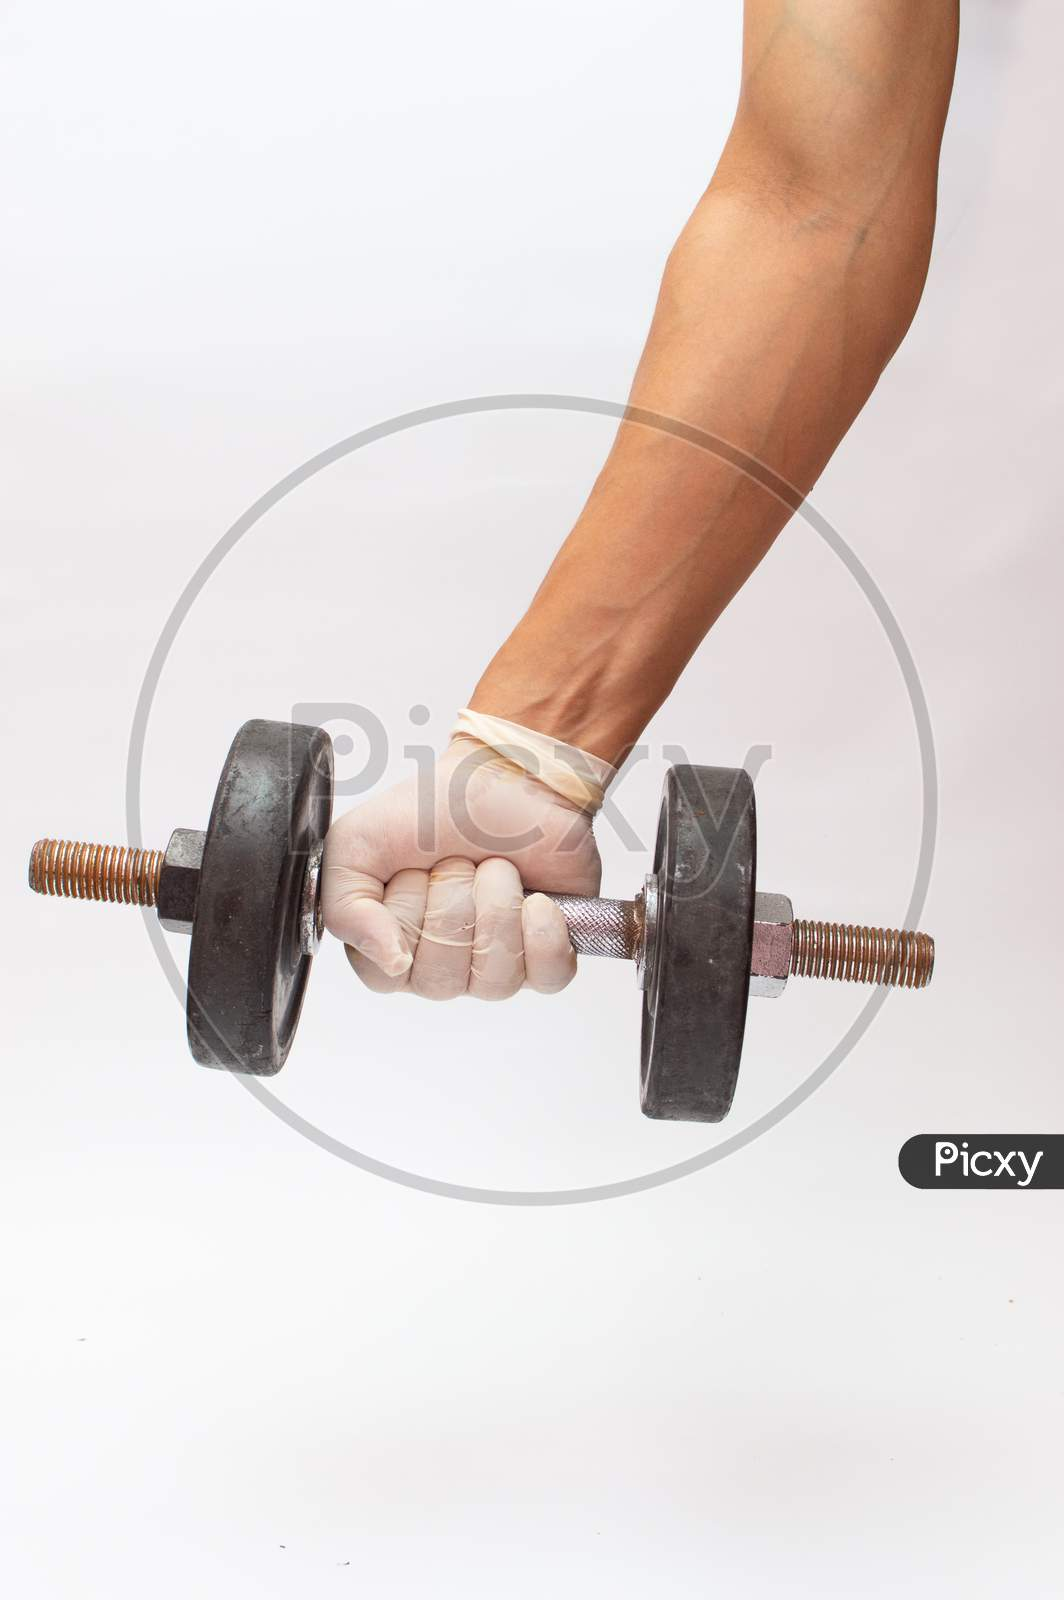 Dumbbell In A Hand Wearing Gloves